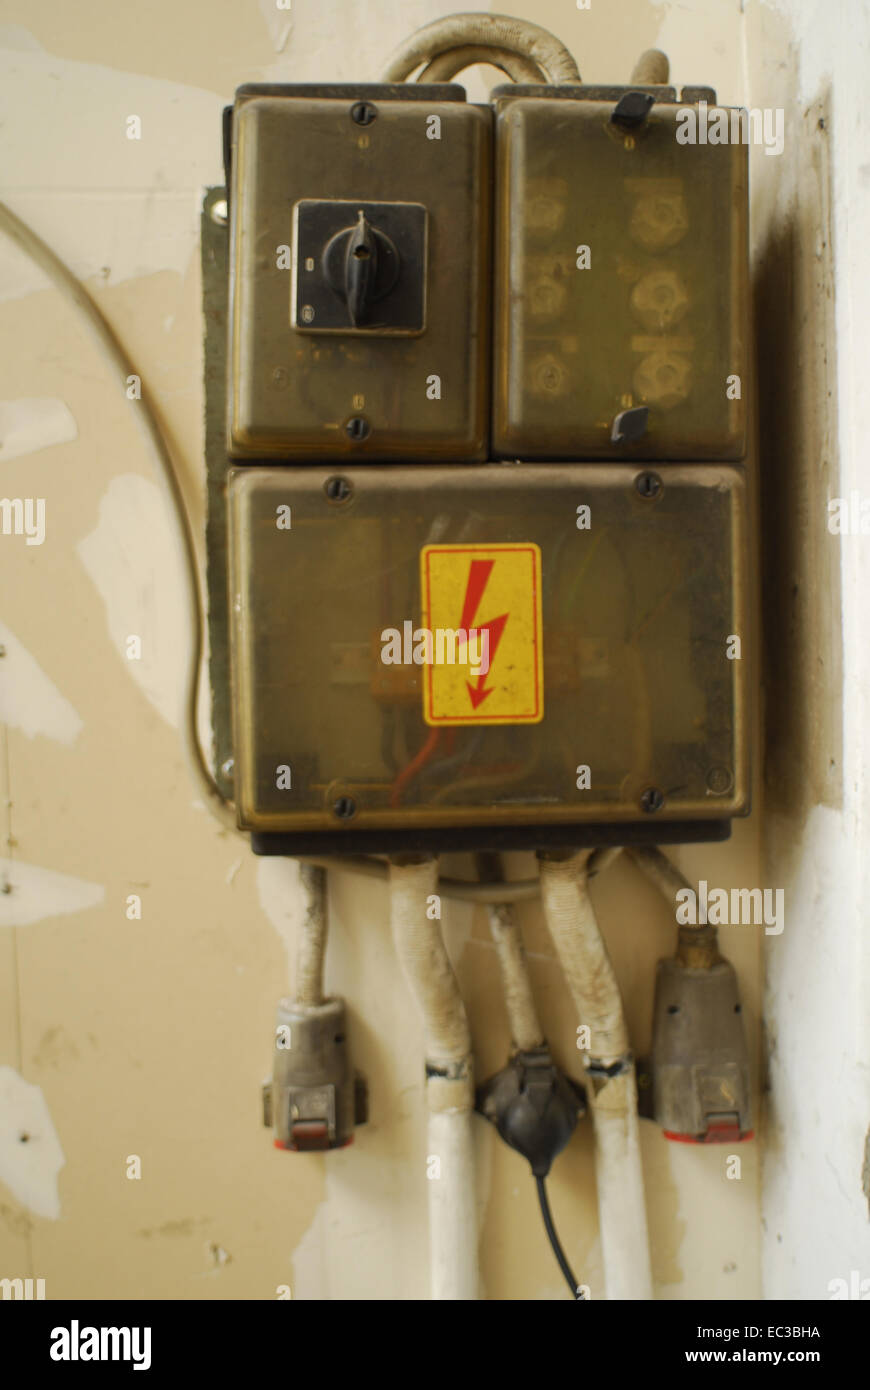 old fuse box EC3BHA old fuse box stock photo, royalty free image 76292310 alamy  at edmiracle.co